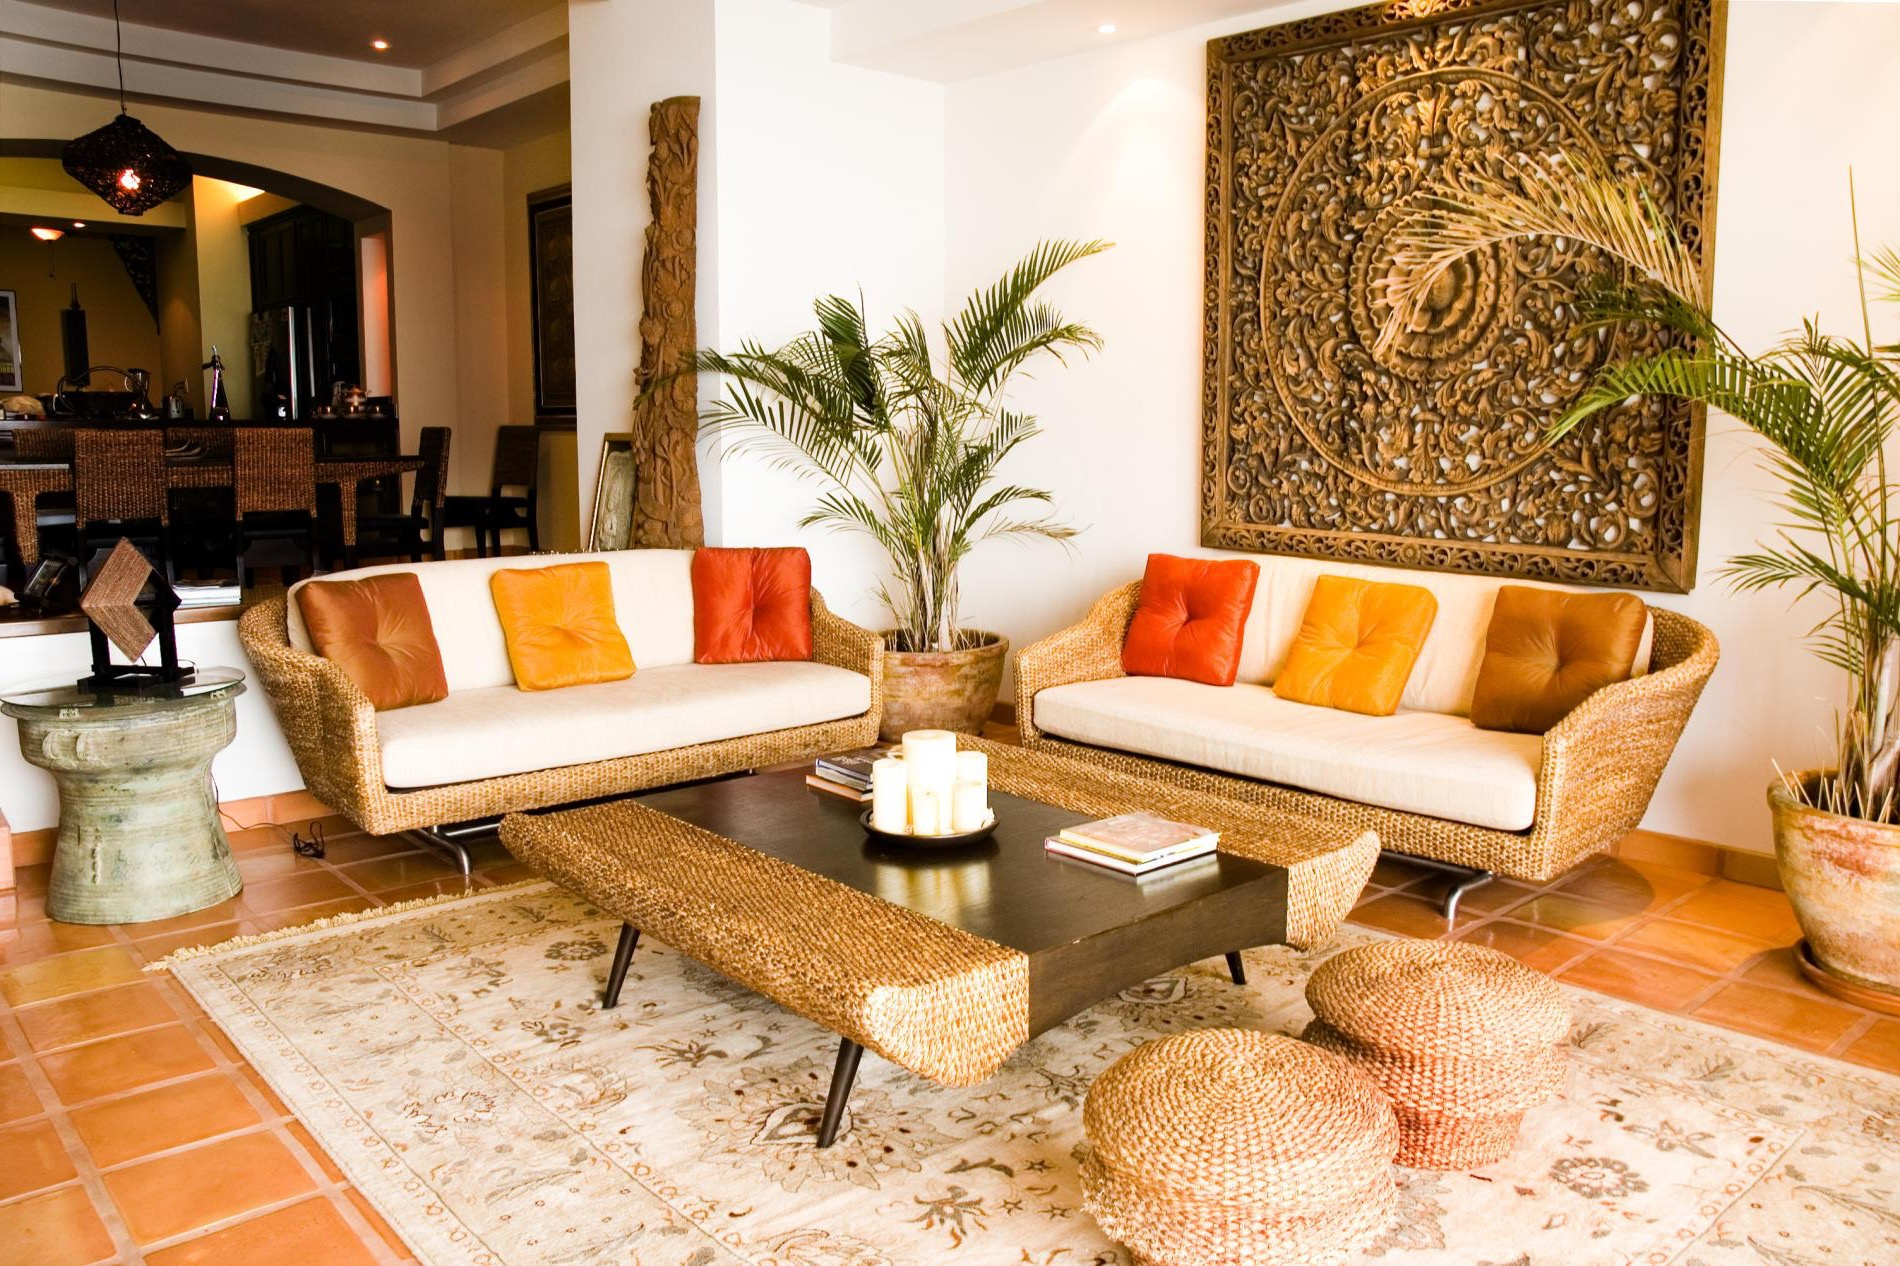 Traditional Indian Living Room With Oriental Wall Decor And Wooden Floor  With Indian Carpet And Rattan Part 7